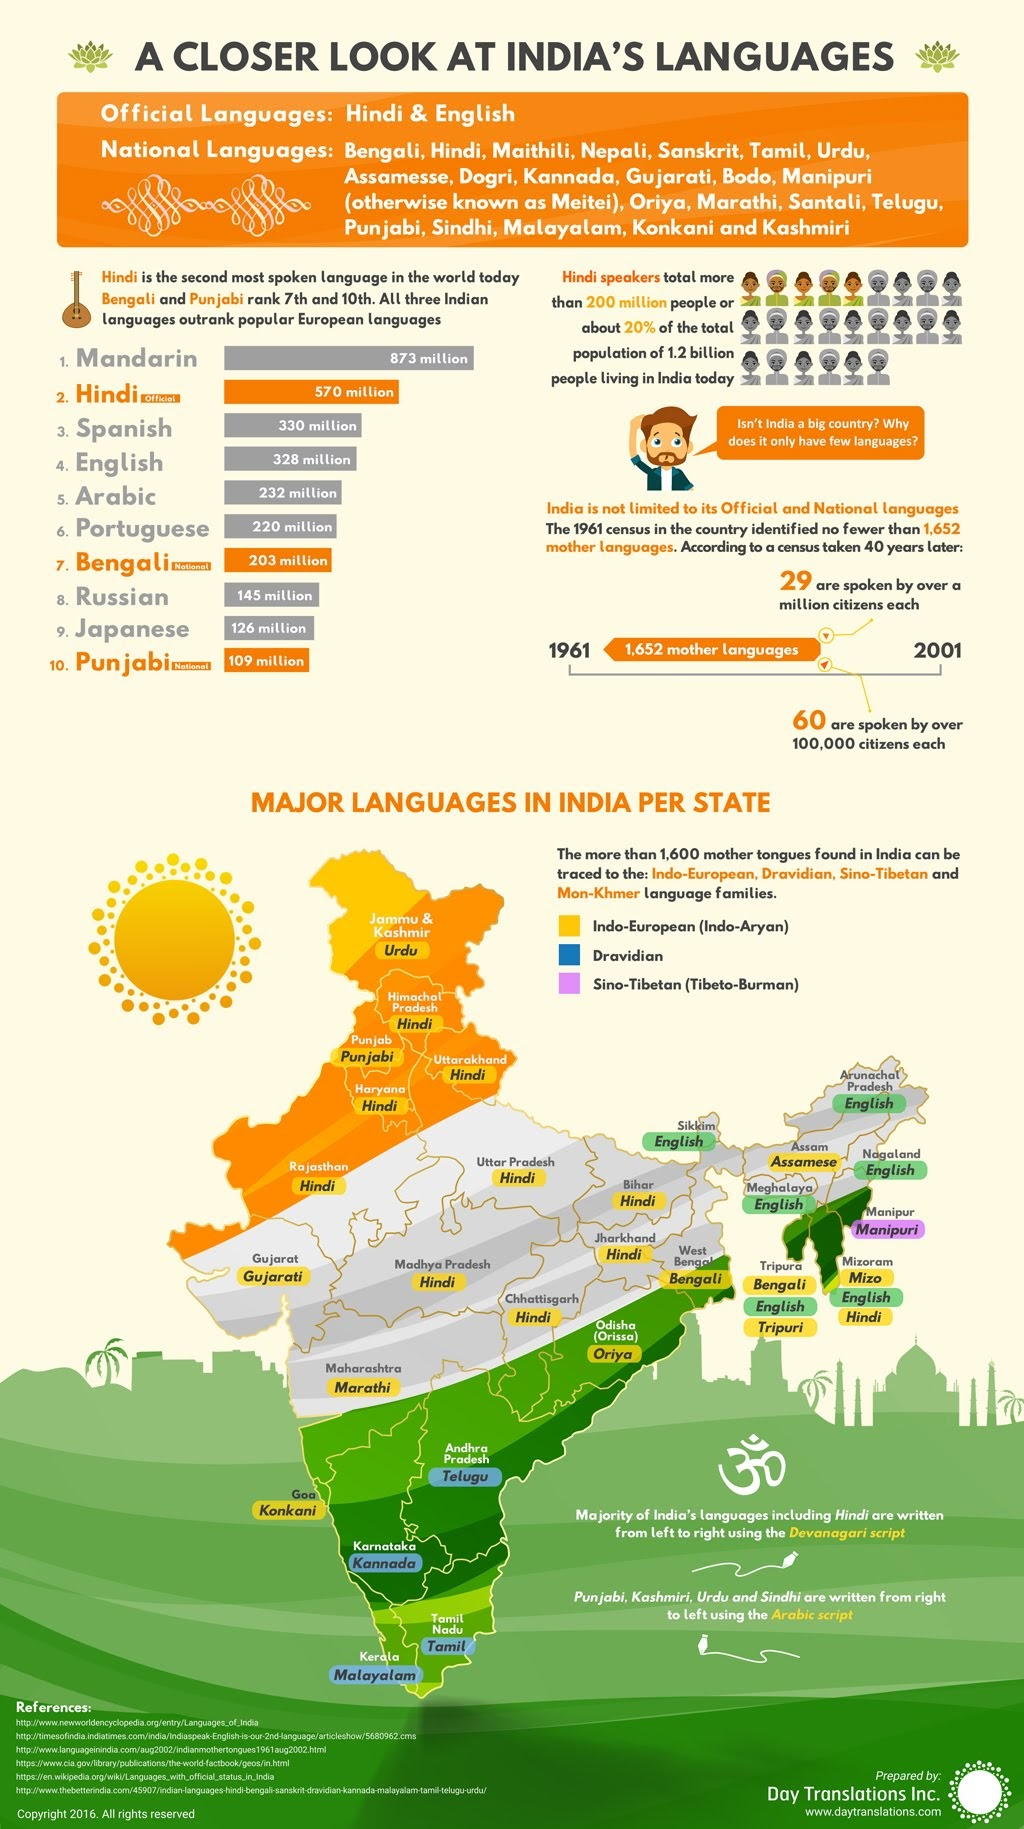 A Closer Look at India's languages